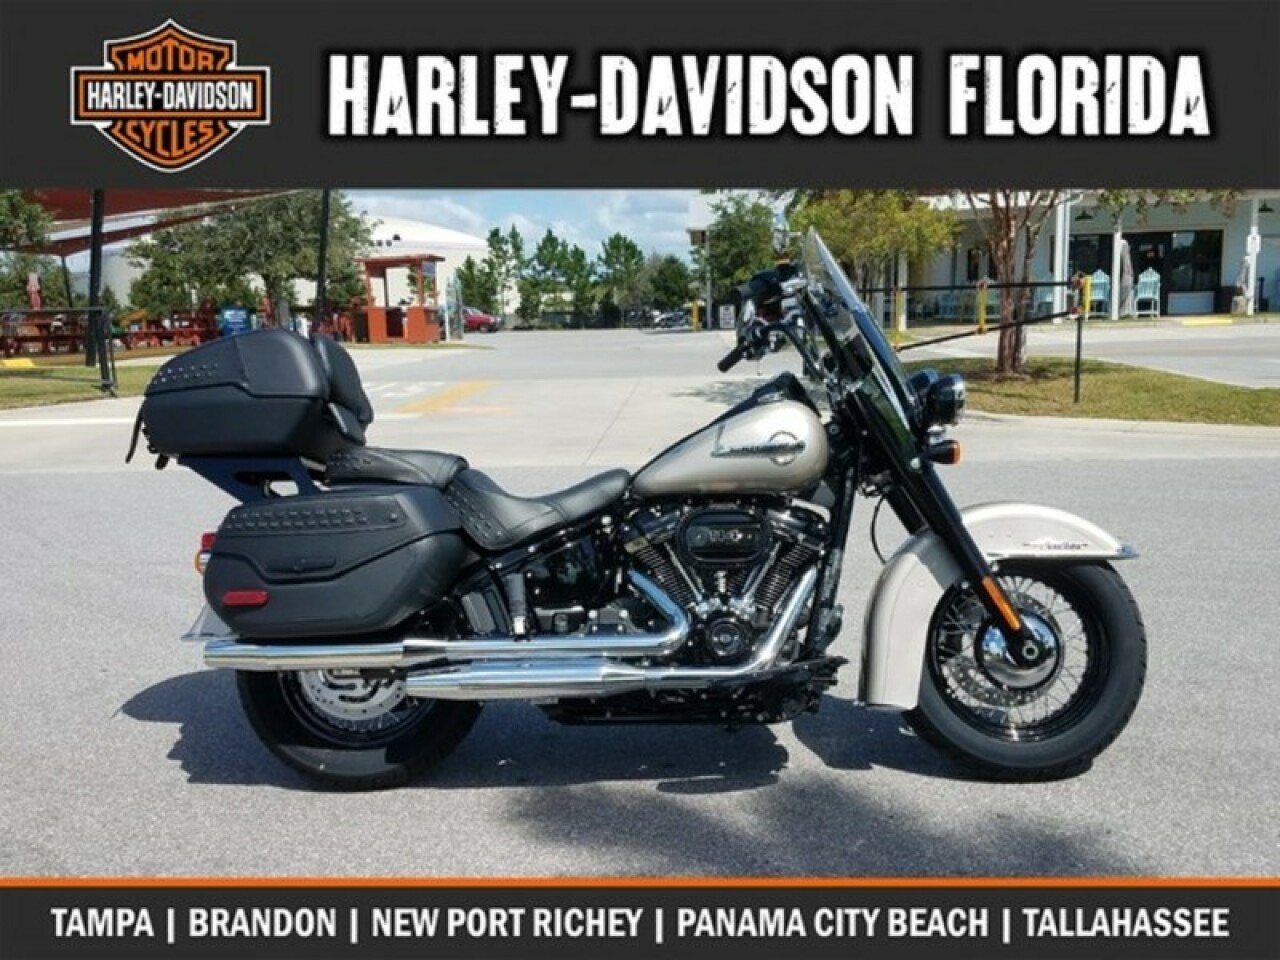 2018 harley-davidson softail heritage classic 114 for sale near